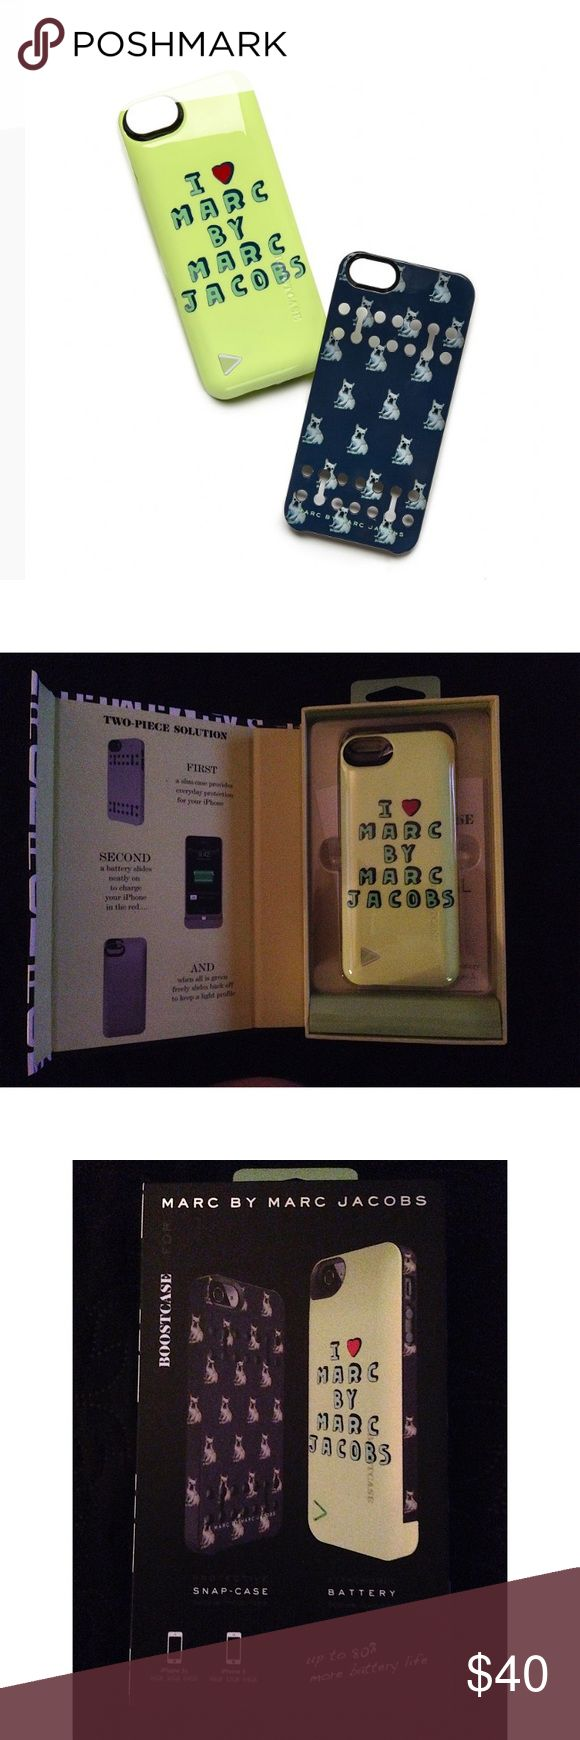 ❤️SALE❤️Marc by Marc Jacobs iPhone5 5s Boost case Marc by Marc Jacobs iPhone5 / 5s Boost case: French BullDog iPhone 5/ 5s case  Gives you 80% more battery power.   Brand new in retail packaging.   Case charges your iPhone and the battery case simultaneously. You don't need your original iPhone cable to charge your phone! Marc by Marc Jacobs Other